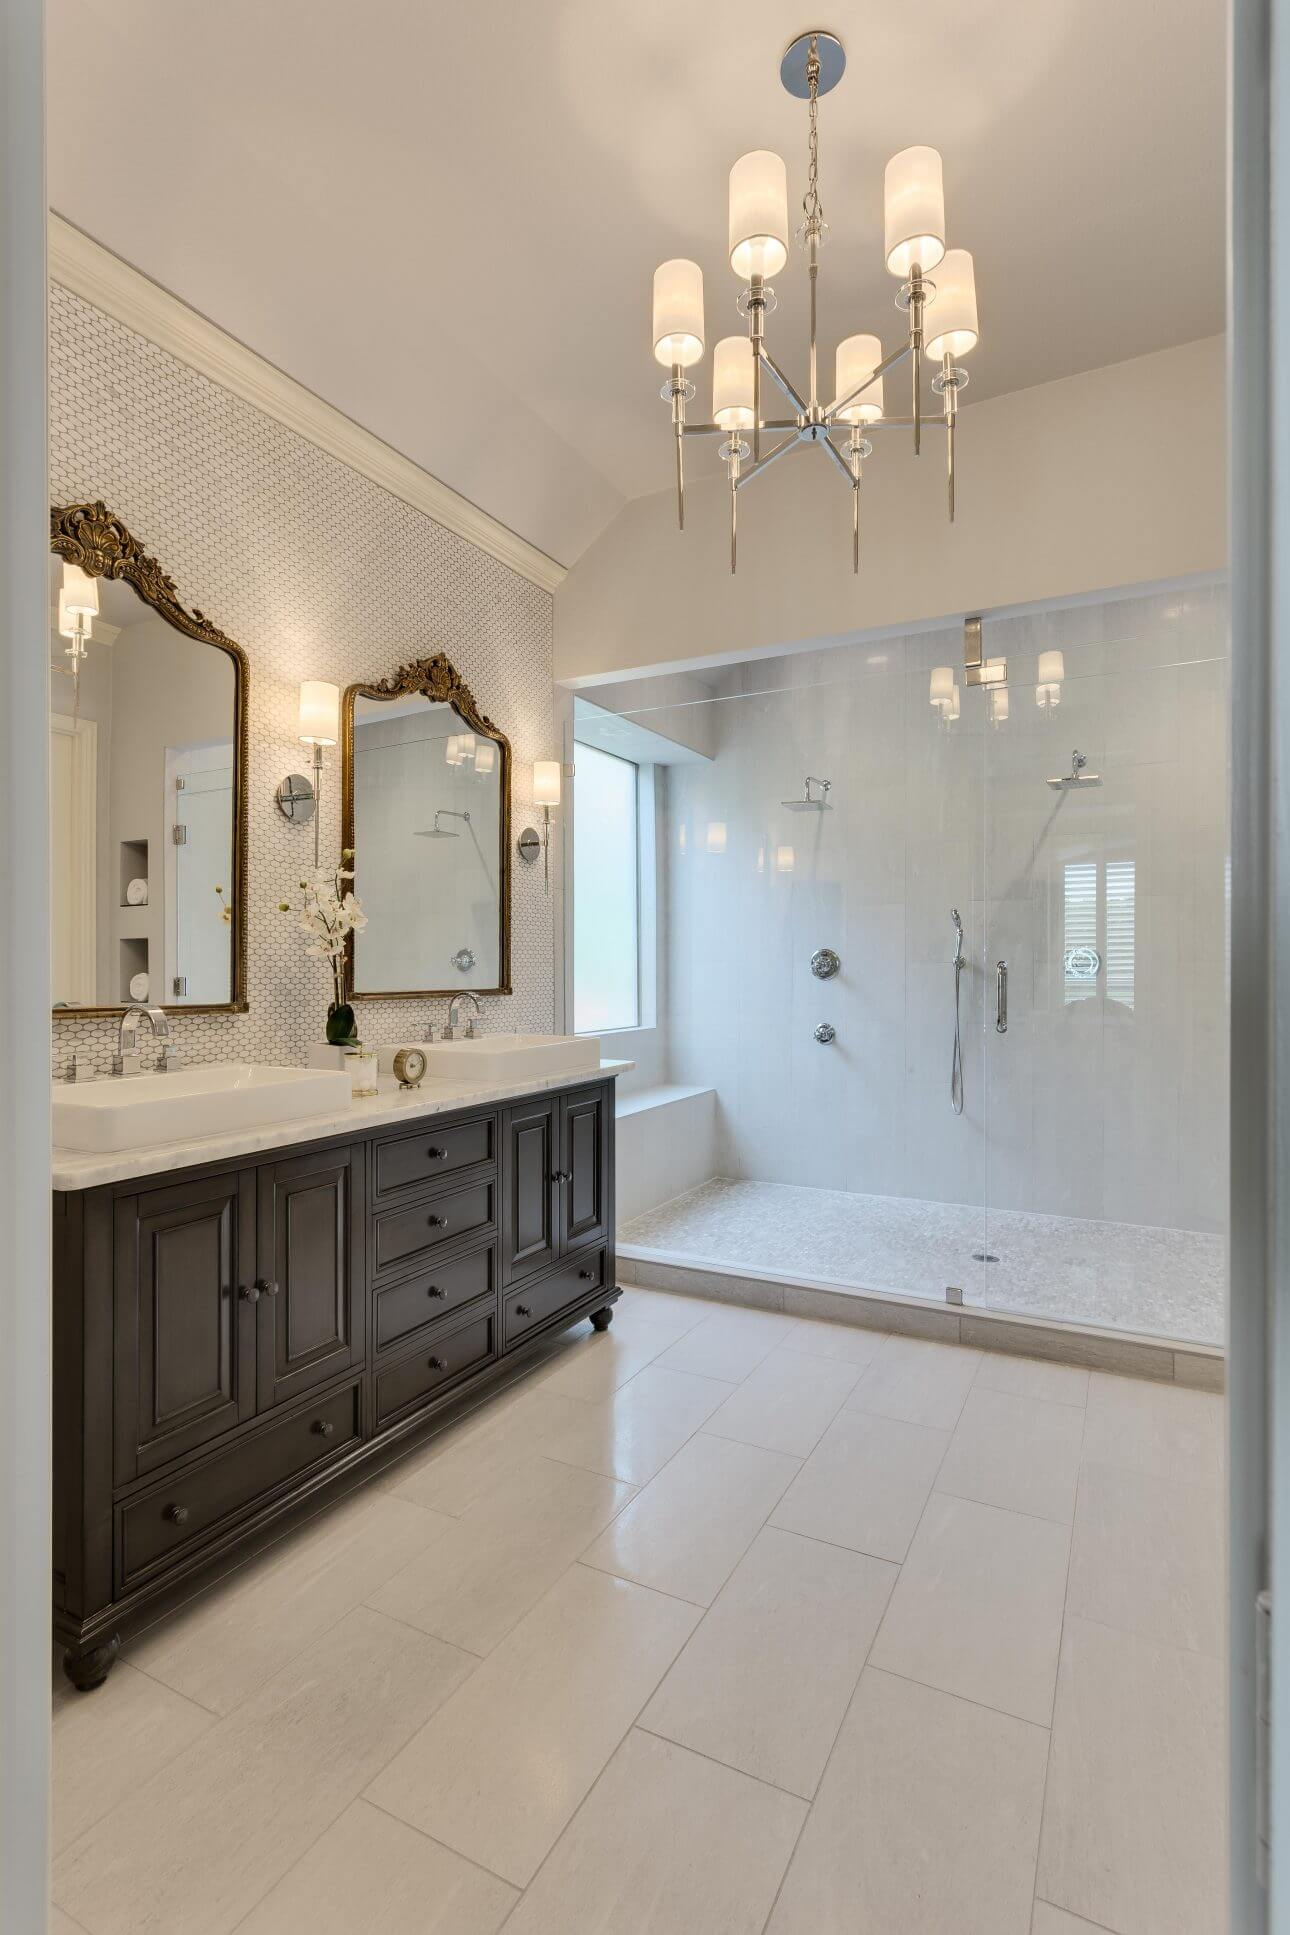 JosephAndBerry-master-bathroom-renovation-Fairview-remodel